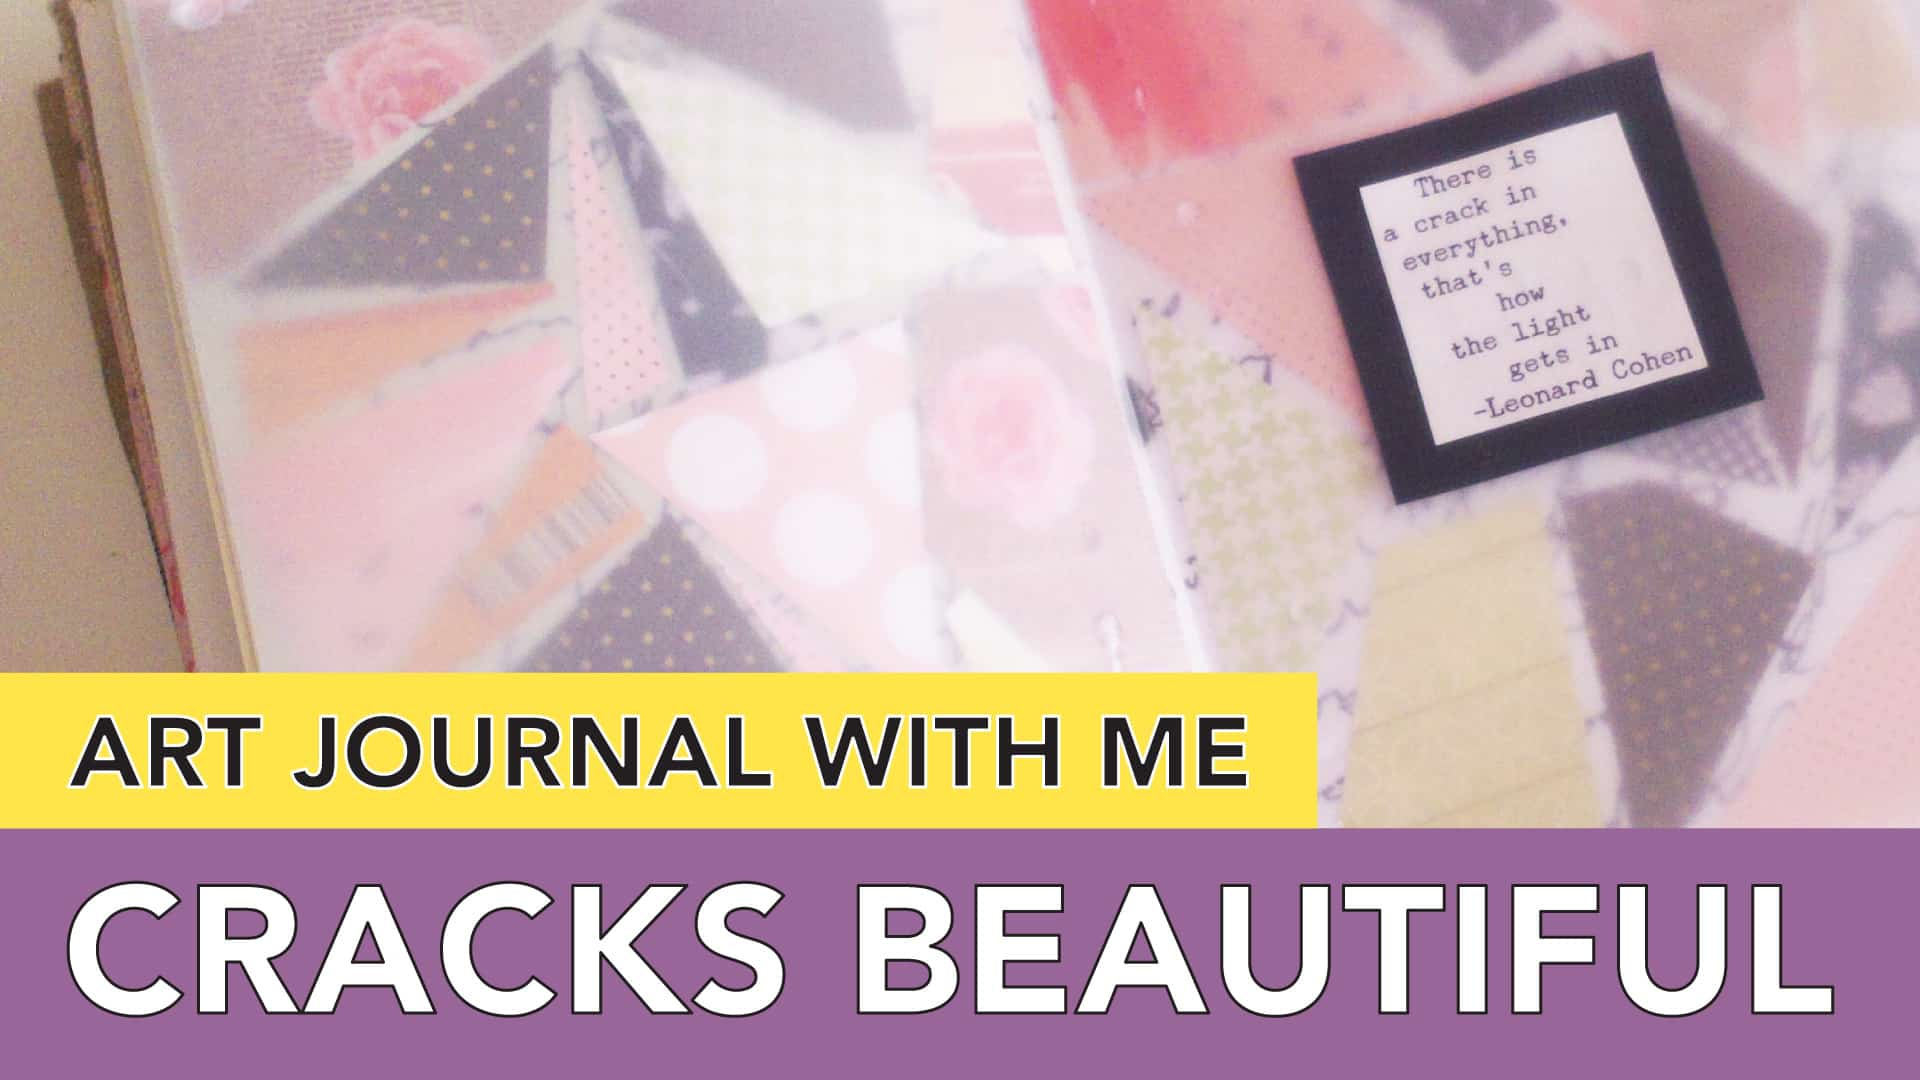 art journal with me with collage paper because cracks are beautiful